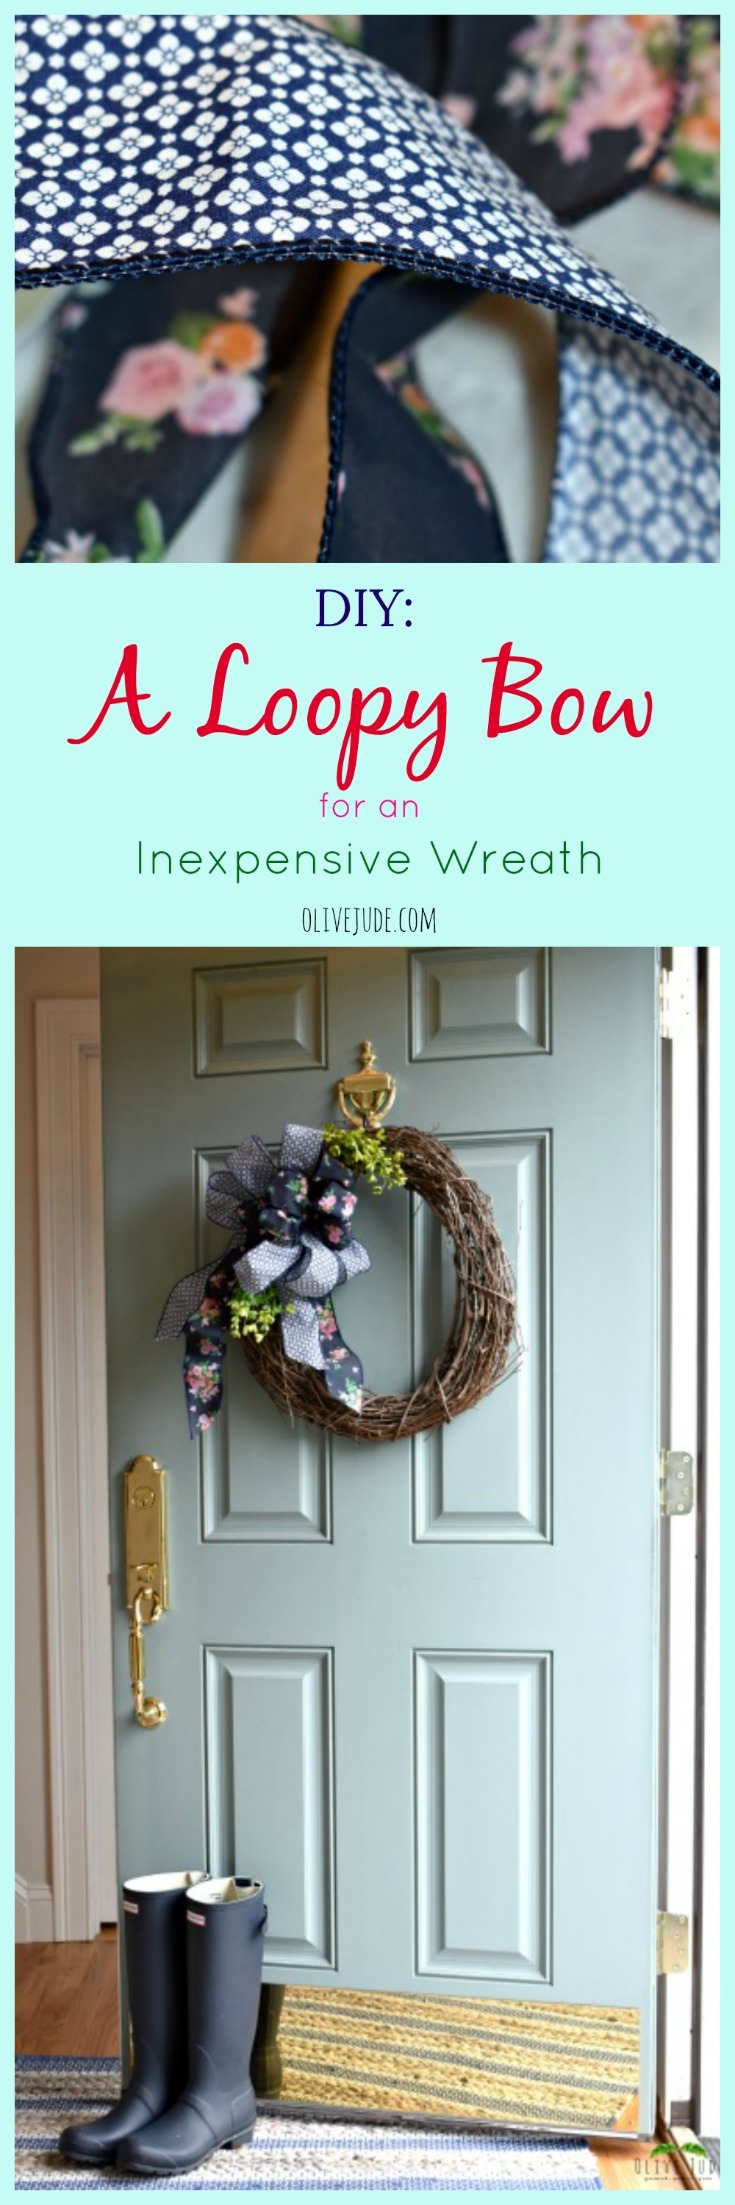 DIY: A Loopy Bow for an Inexpensive Wreath